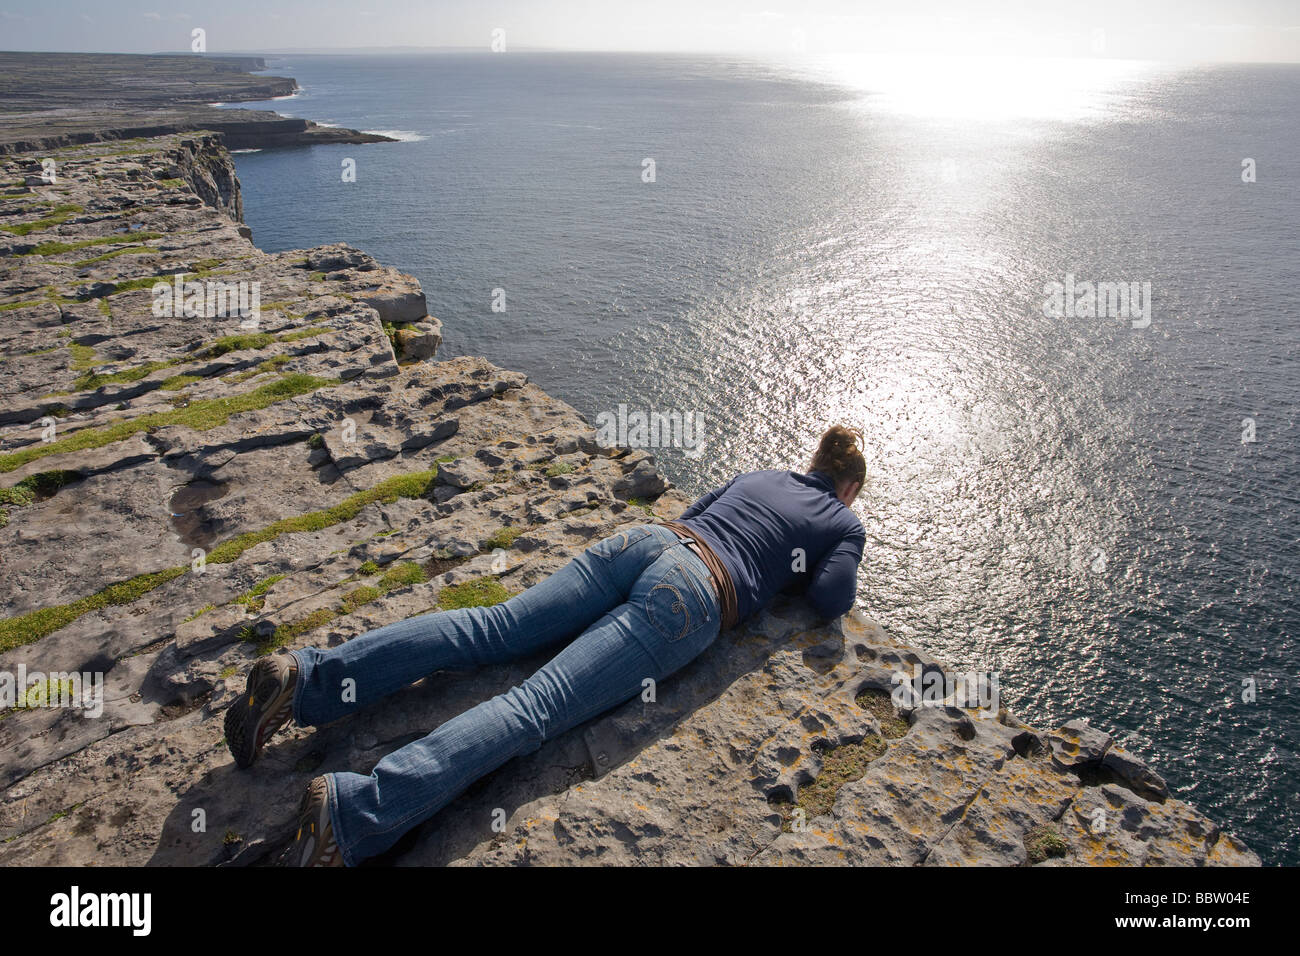 At the Edge. A young woman, echoing the lines in the rock, leans over the 100 meter cliff at Dun Angus to take in - Stock Image